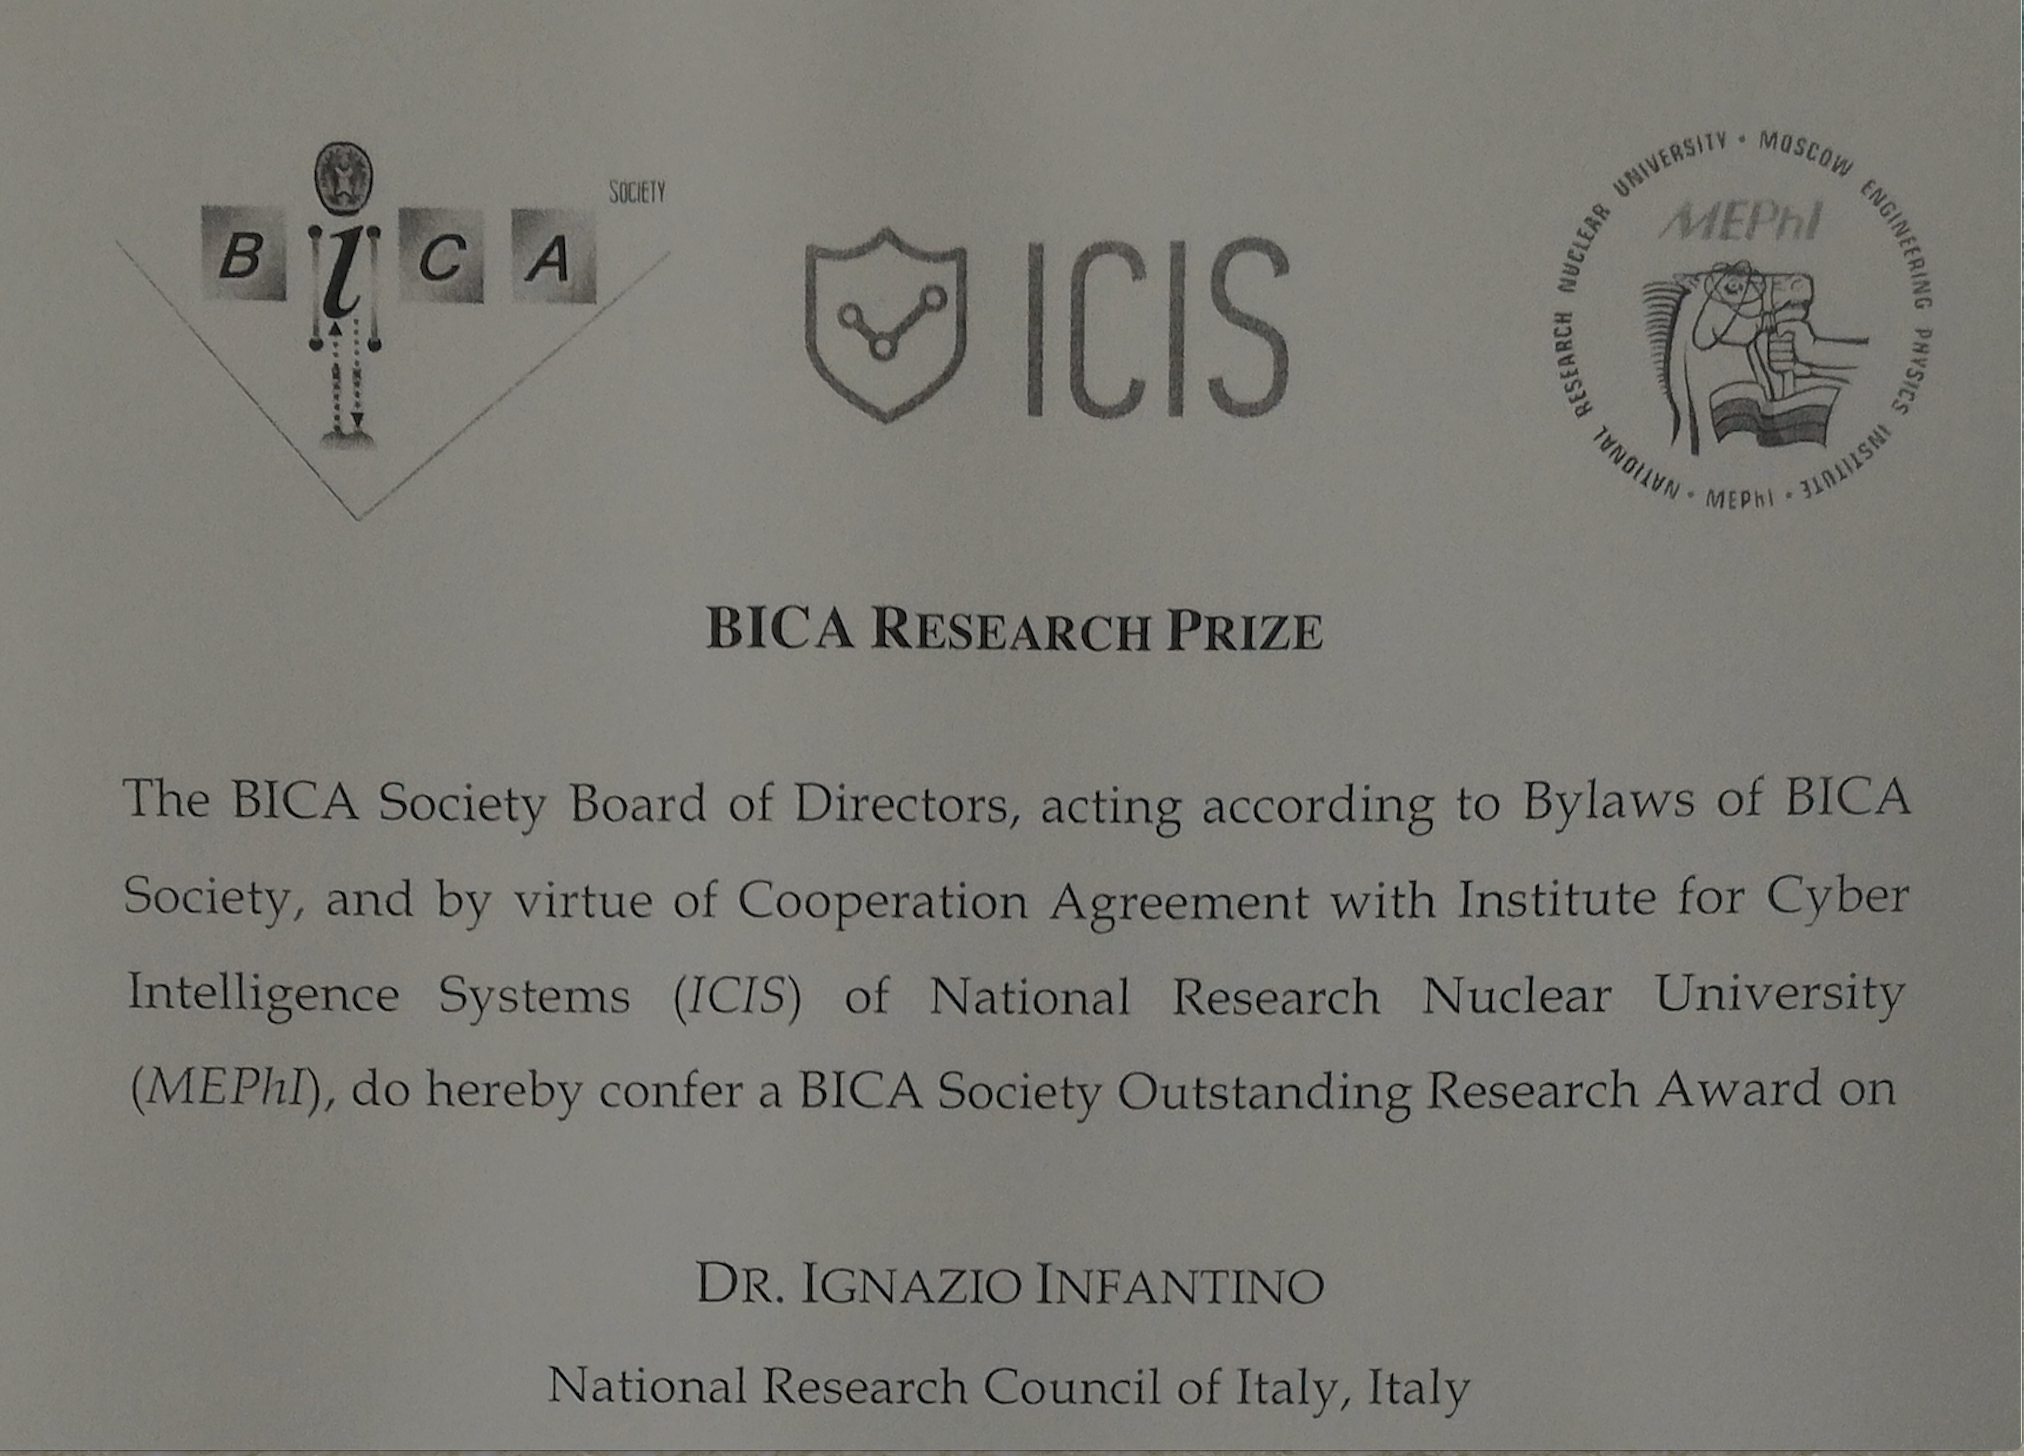 Bica Research Prize